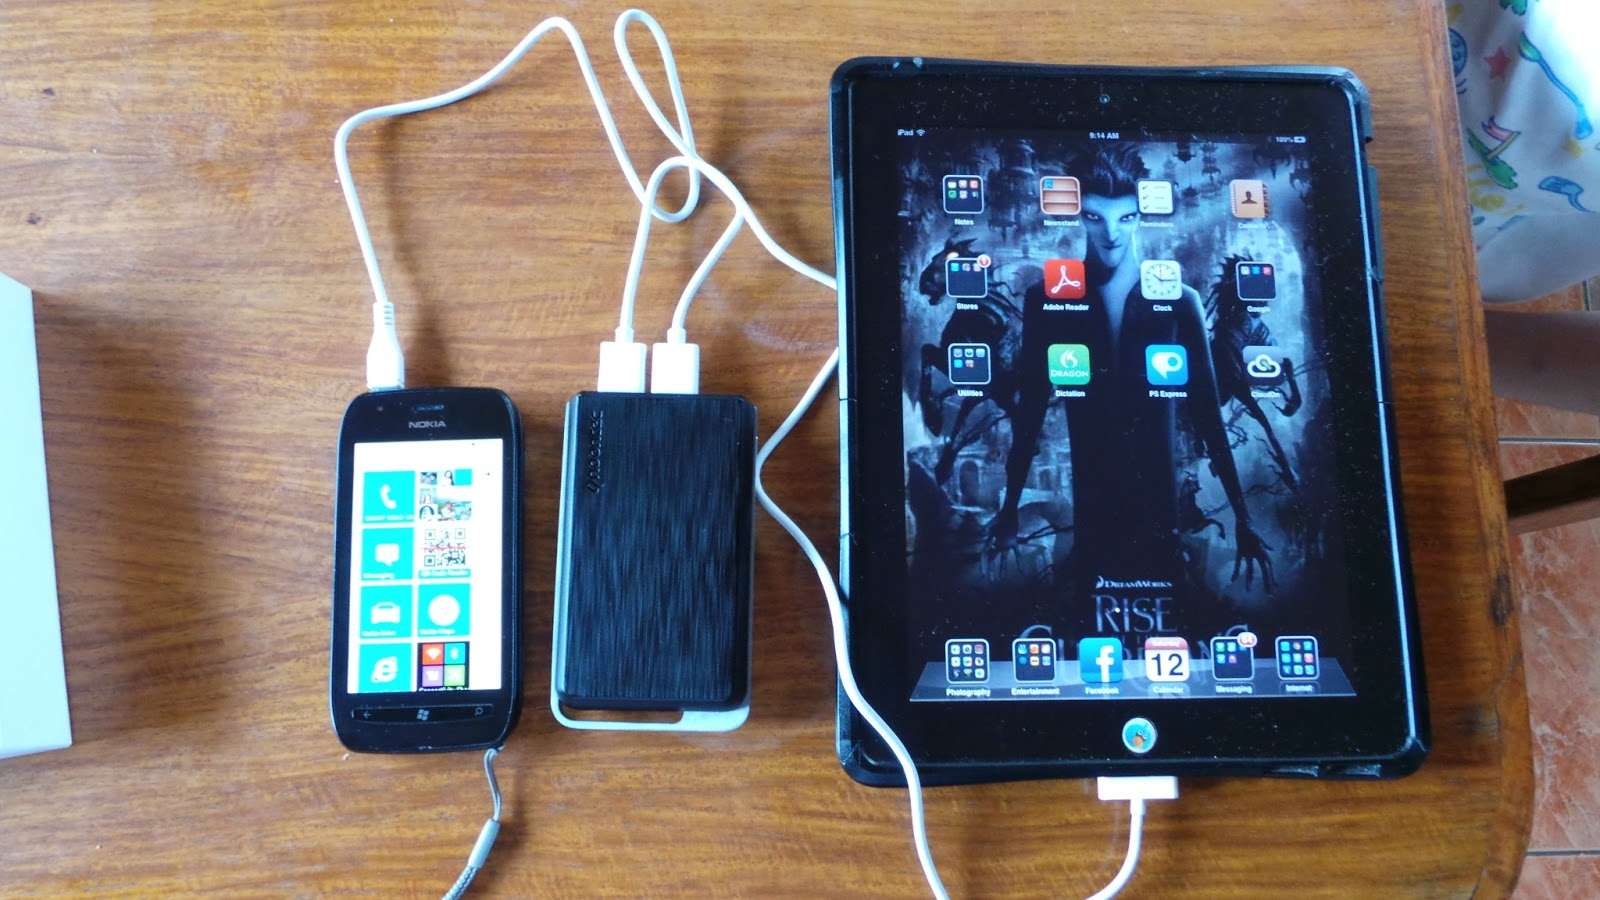 Power Bank can charge all devices